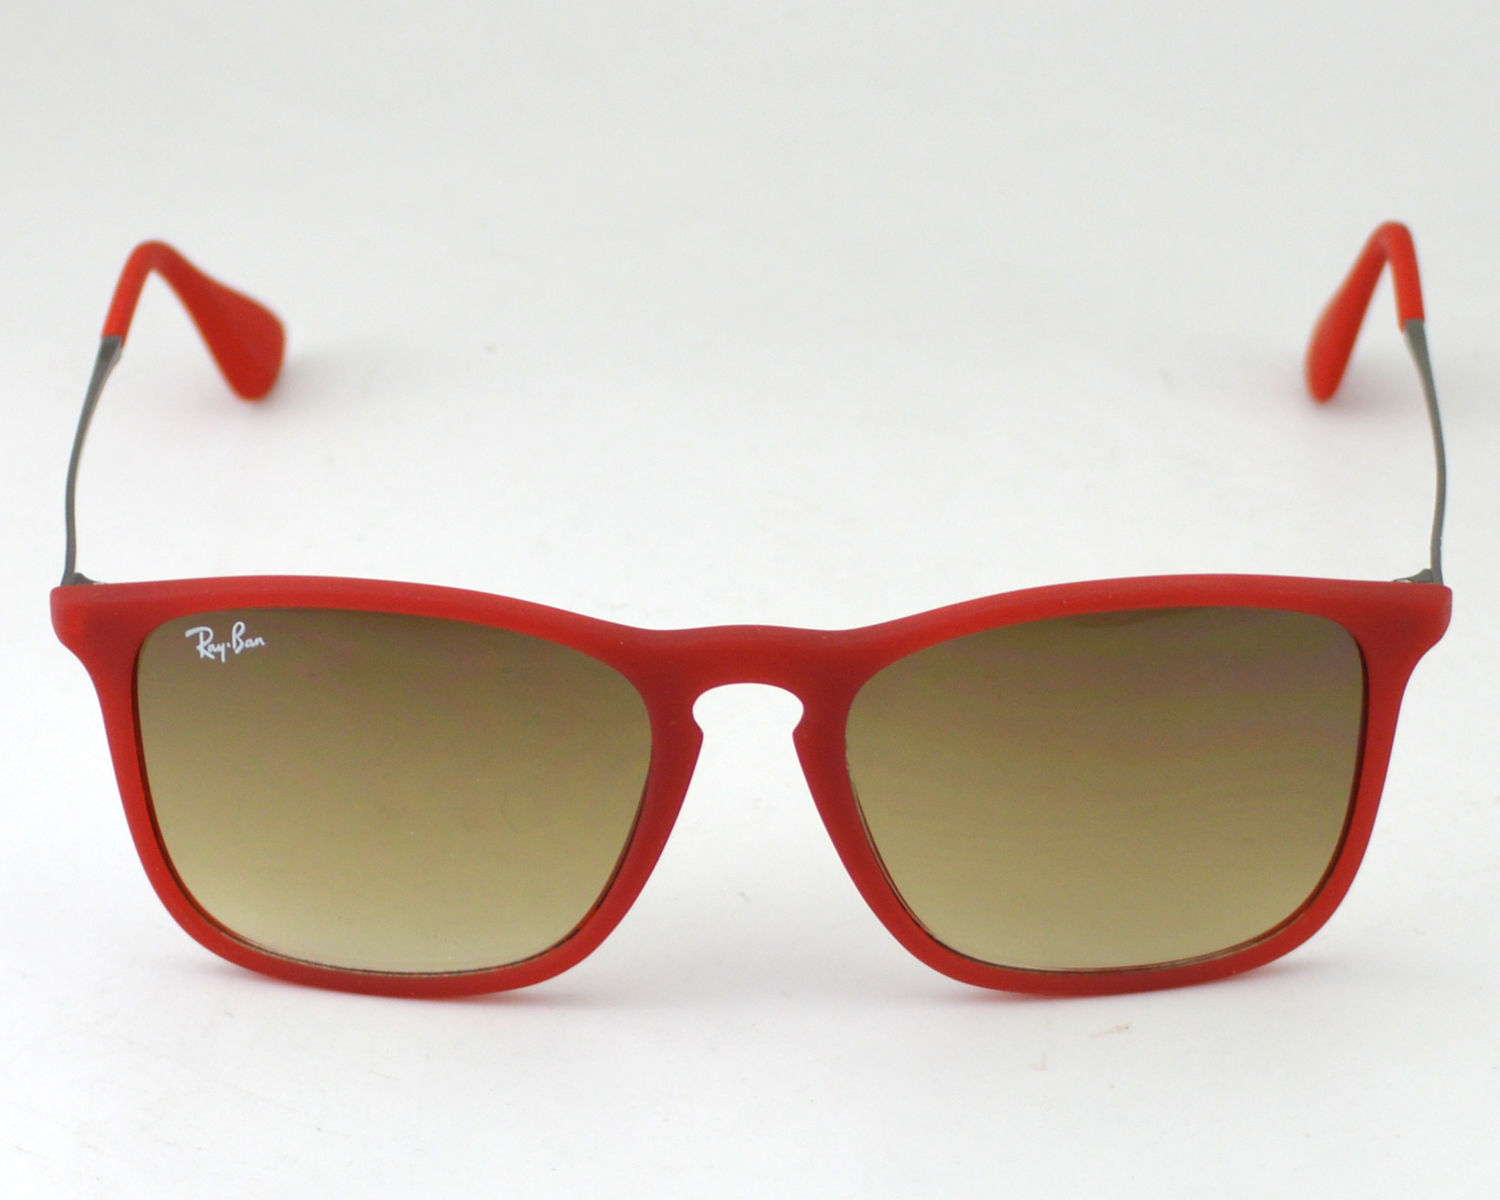 247887a60b1 Ray-Ban RB4187 Chris 898 11 Red Frame Light Brown Lens Male Sunglasses 54mm